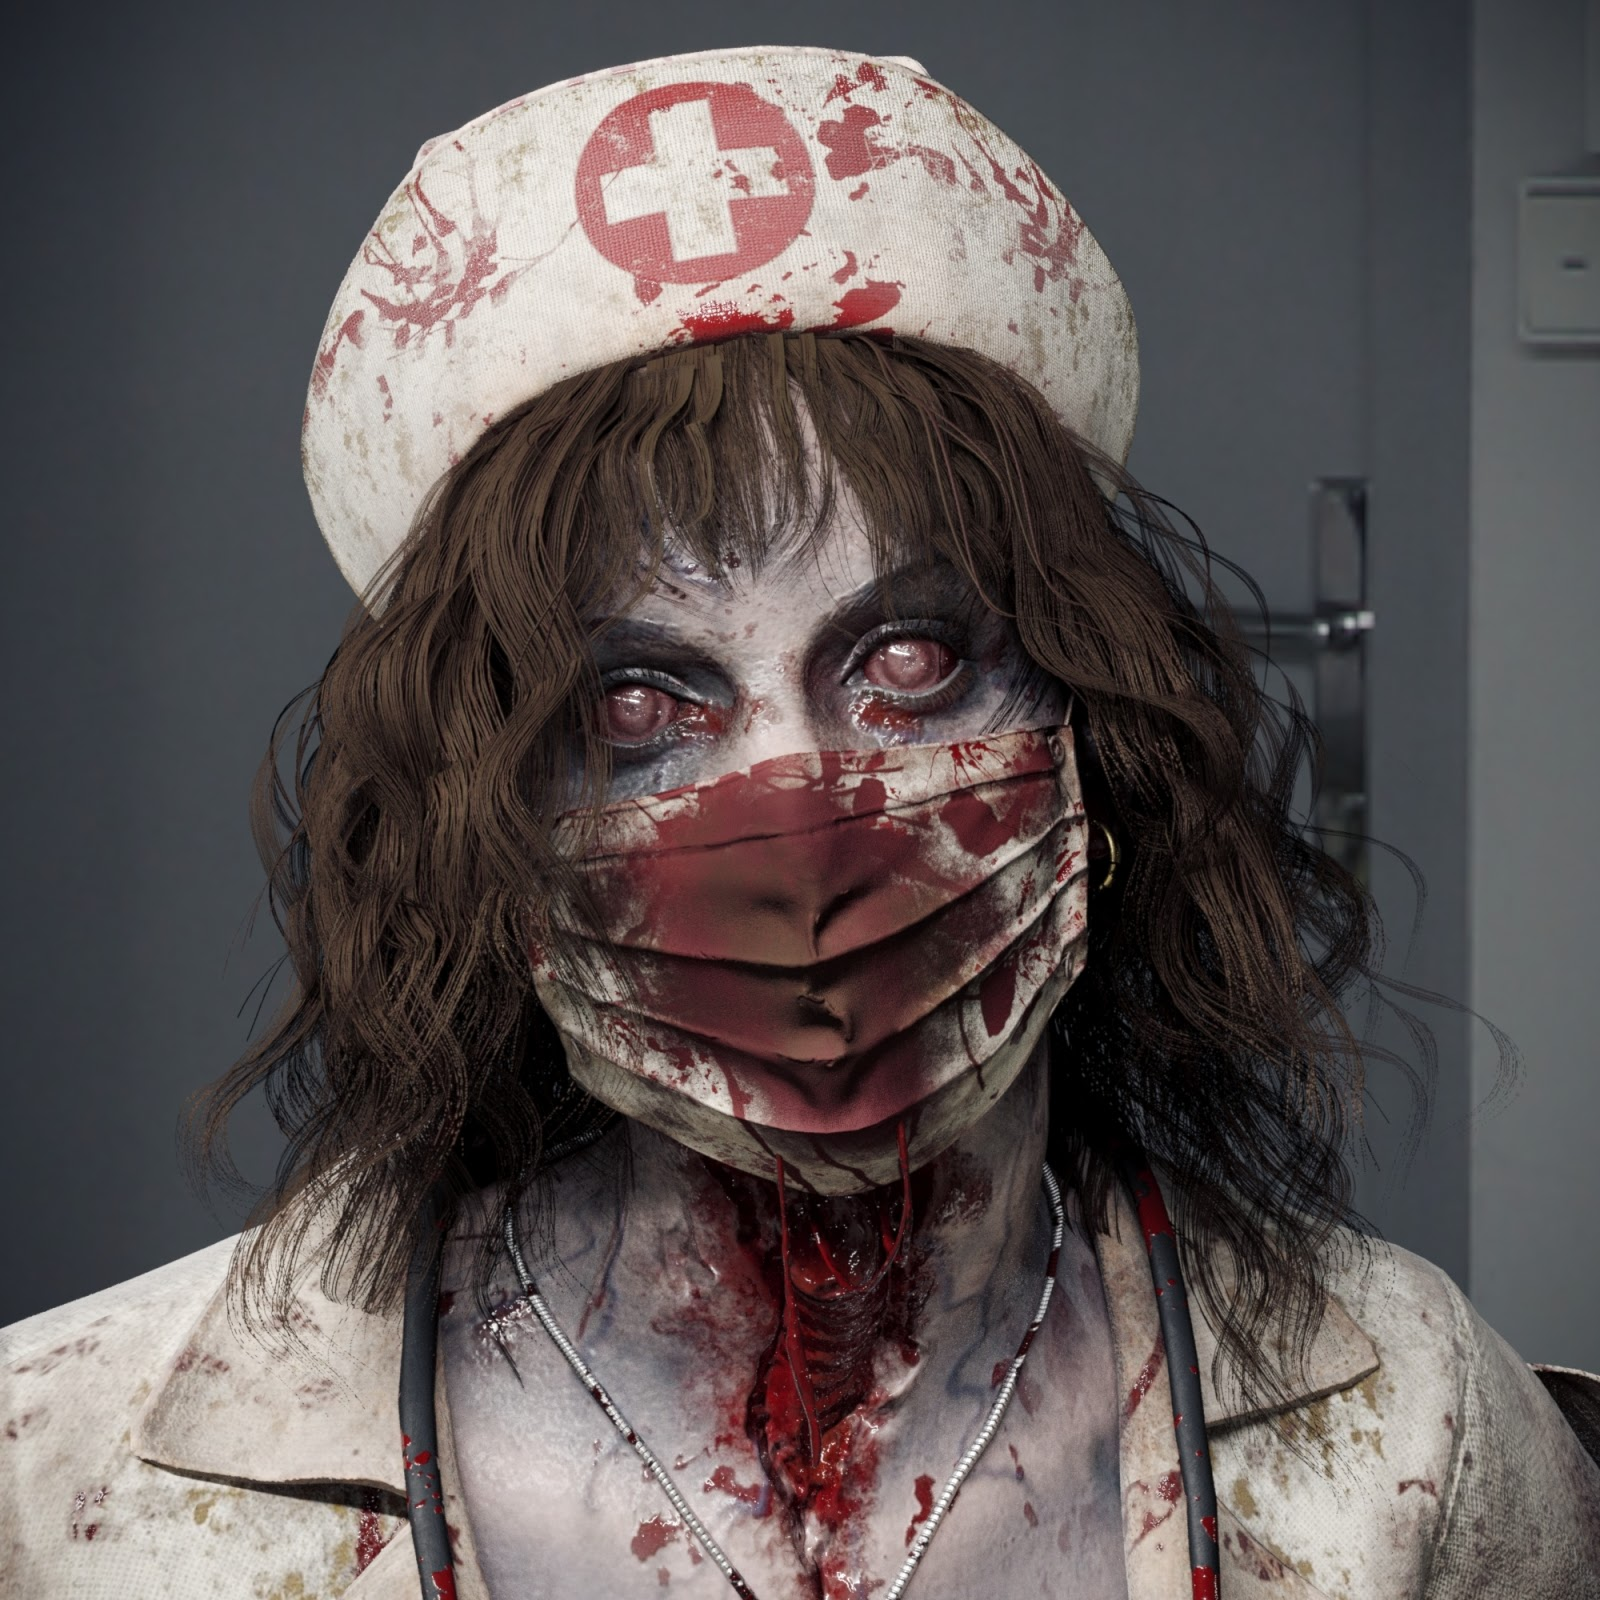 3D Character Zombie Nurse PBR Rigged by michael weisheim woolfy